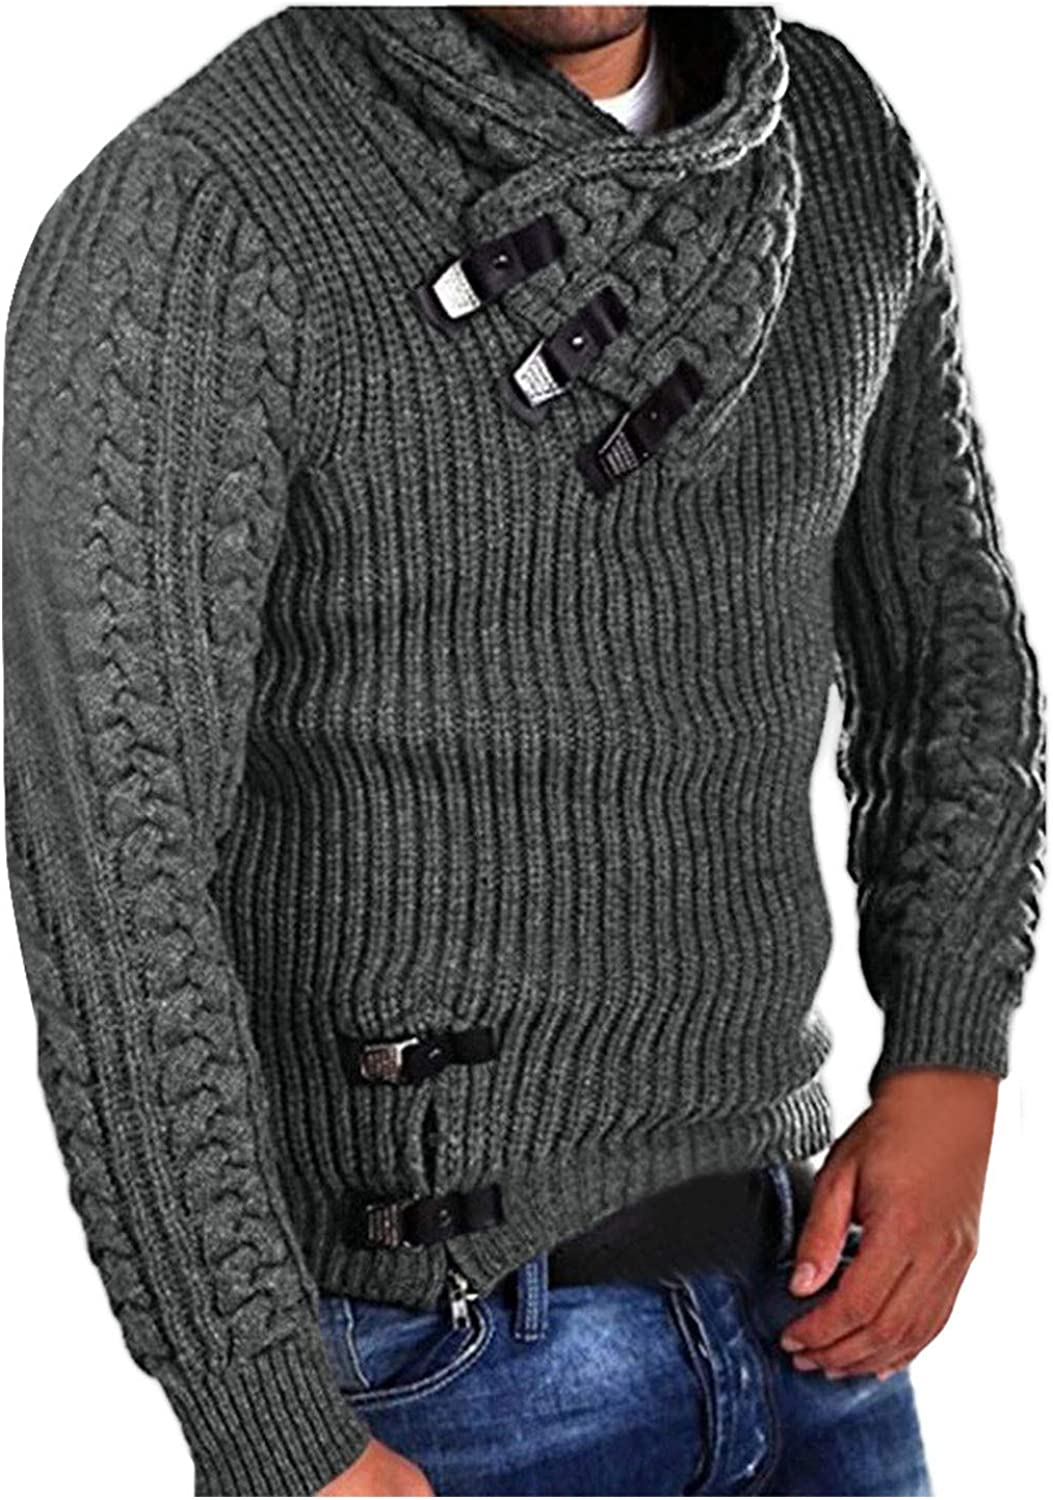 UBST Knitted Sweaters for Mens, Fall Winter Cowl Neck Pullover Horn Button Turtleneck Cardigan Casual Warm Jumper